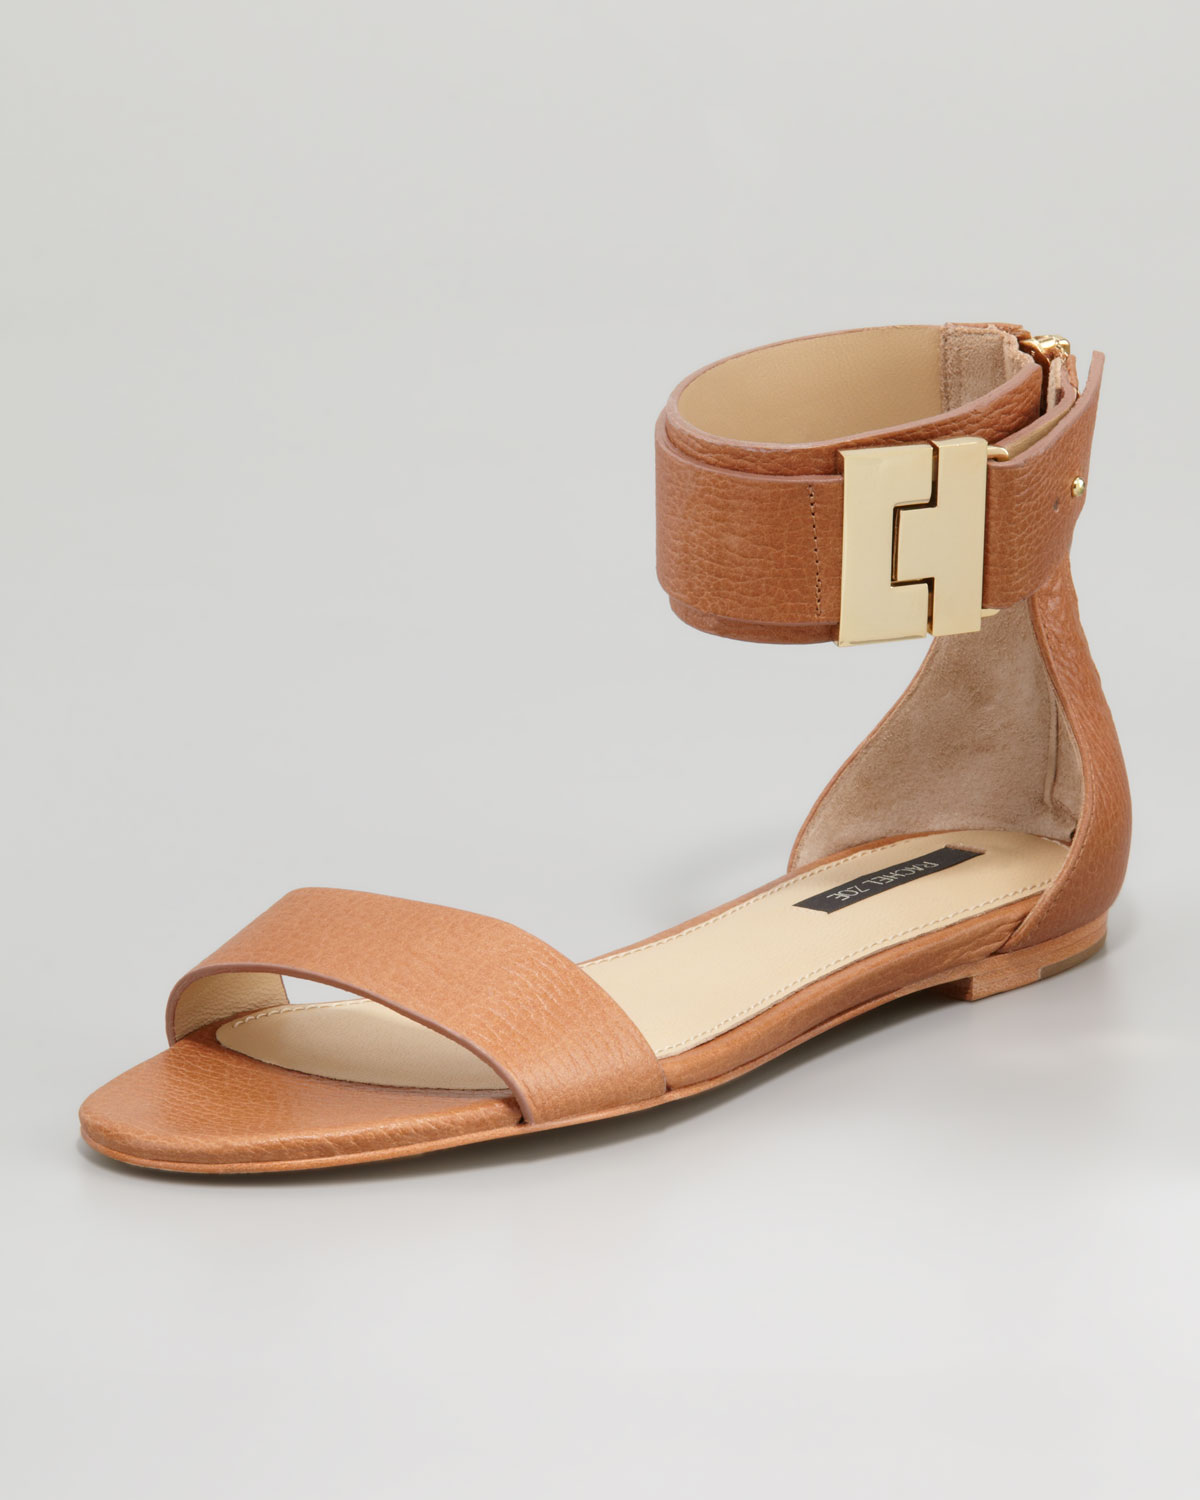 footlocker pictures sale online clearance official site Rachel Zoe Leather Ankle Cuff Sandals wiki outlet for cheap fake cheap price RvYwew